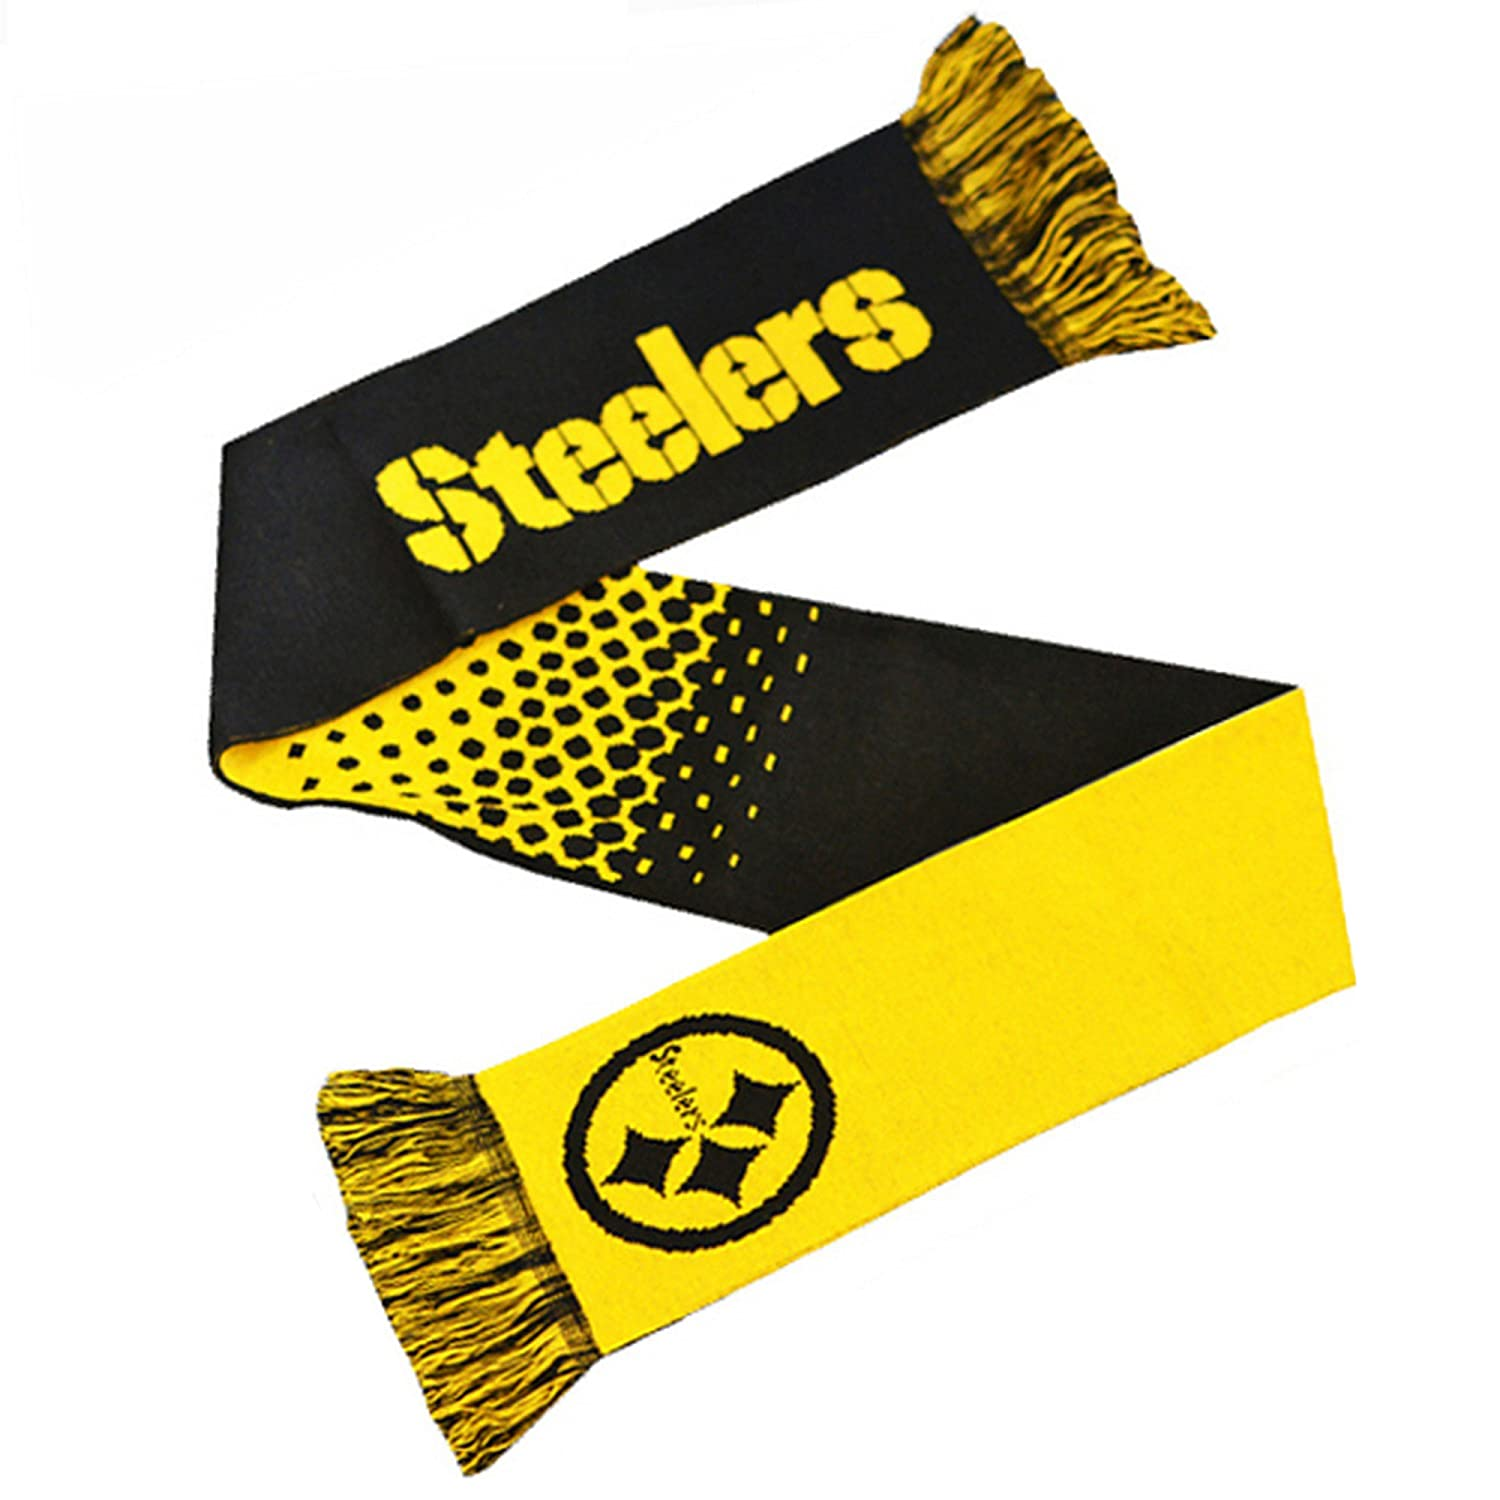 NFL Schal Scarf PITTSBURGH STEELERS Fade Football Fanschal Forever ...